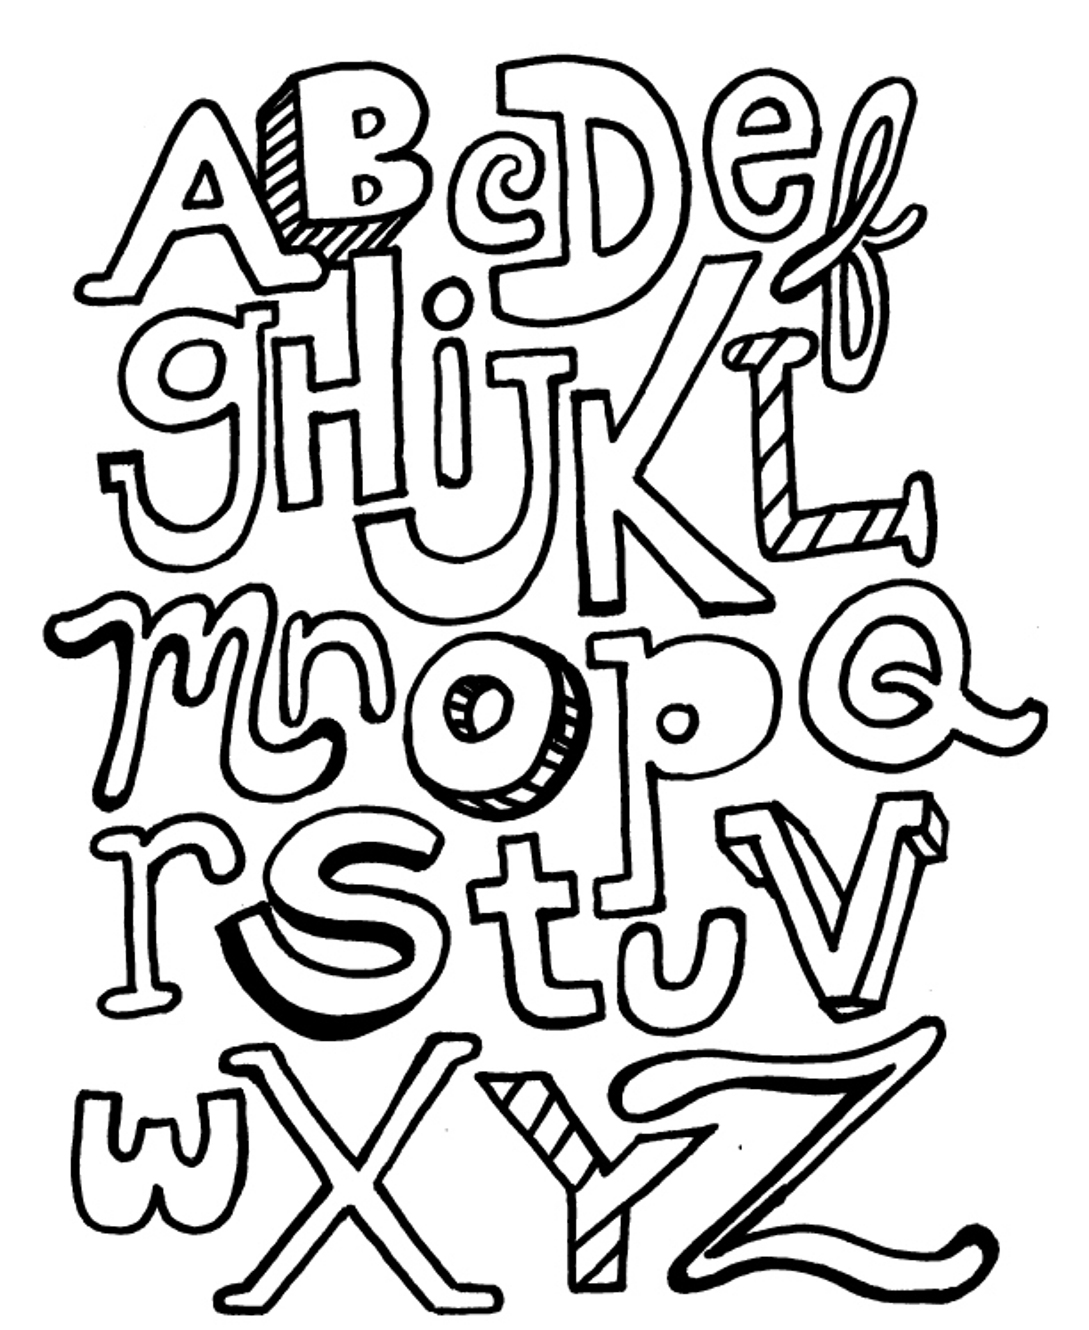 abc coloring page whole alphabet coloring pages free printable coloring home page coloring abc